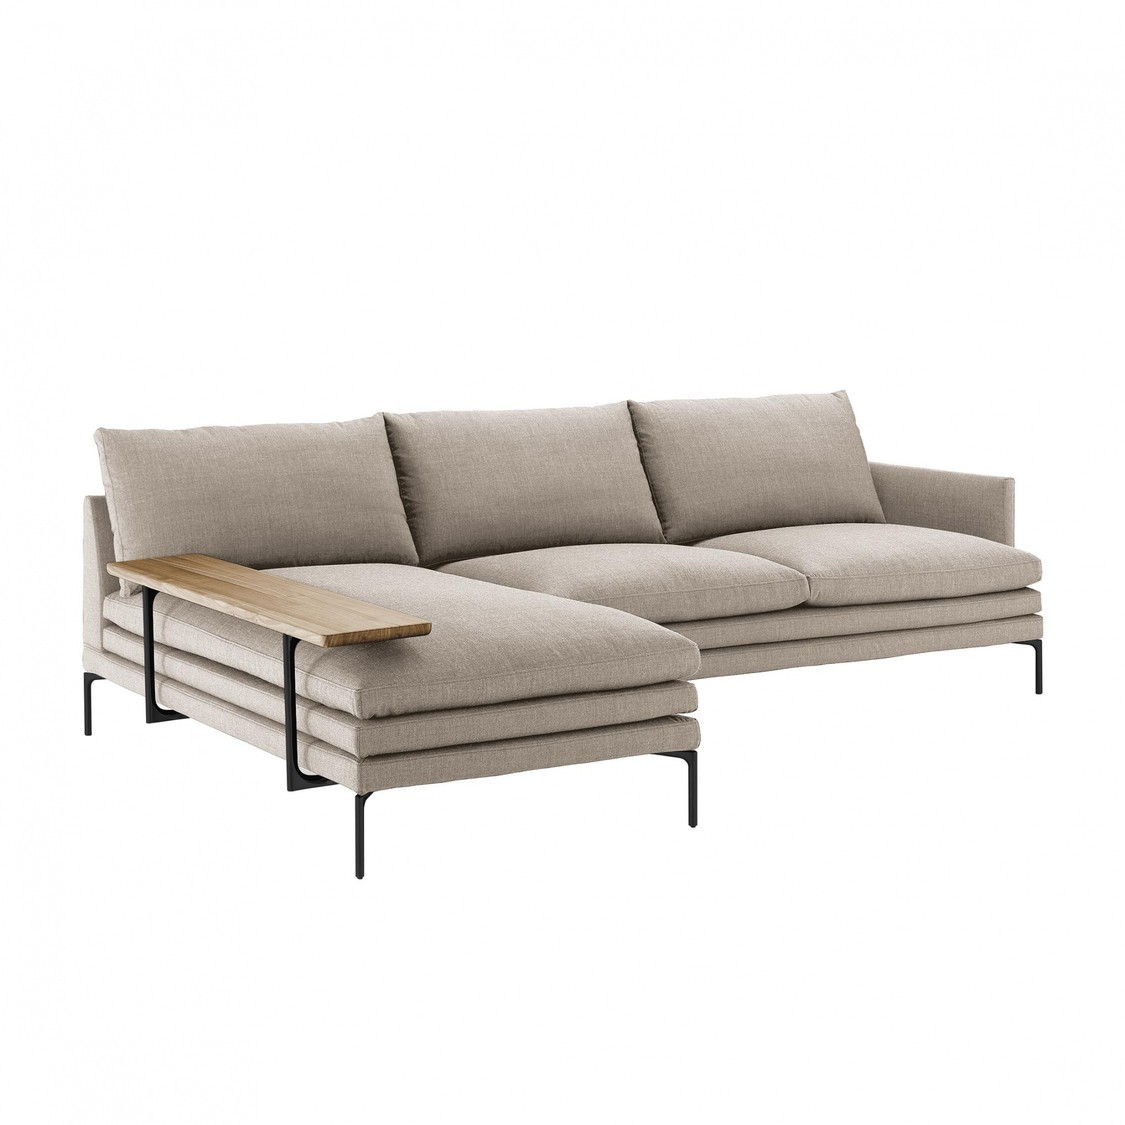 William Sofa With Chaise Longue 310x100cm